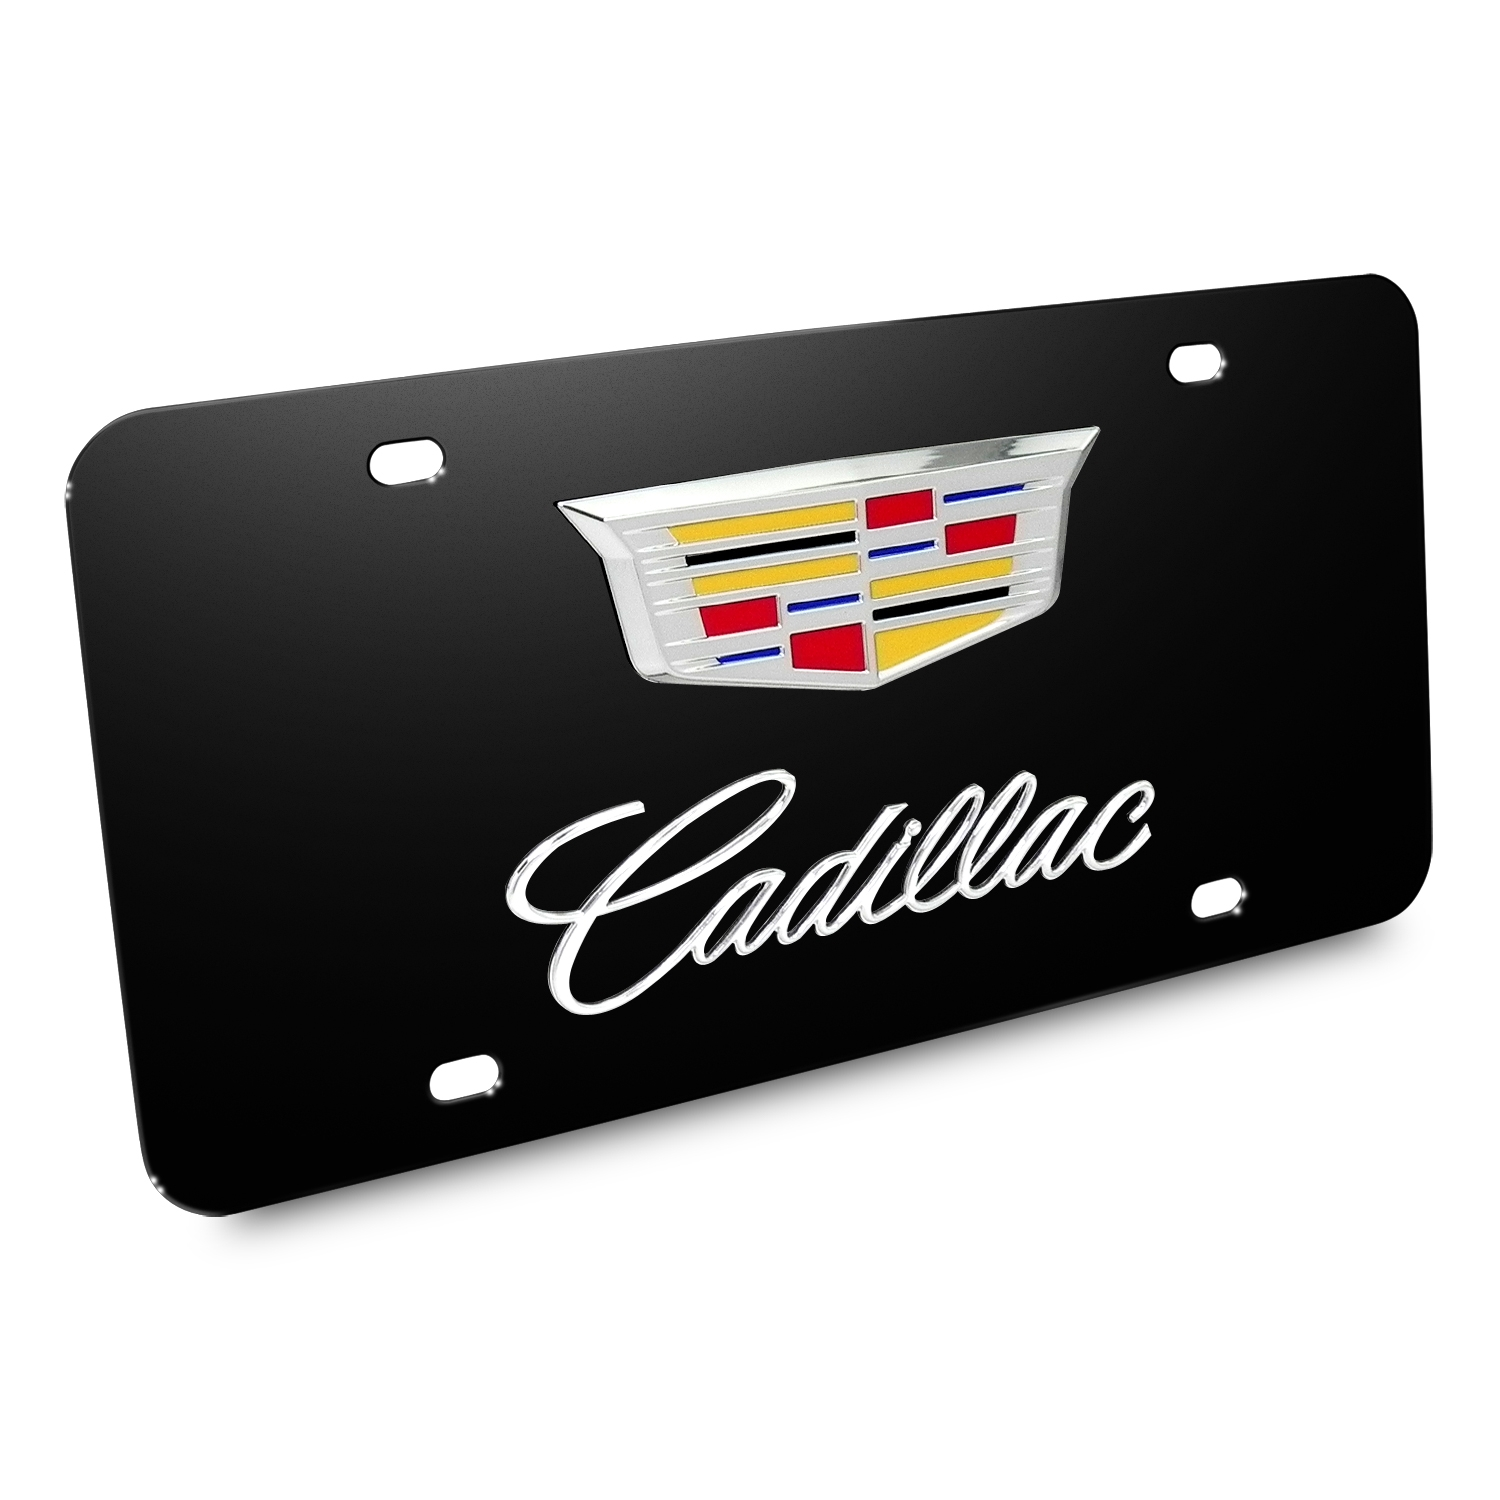 Cadillac Crest Double 3D Logo Black Stainless Steel License Plate